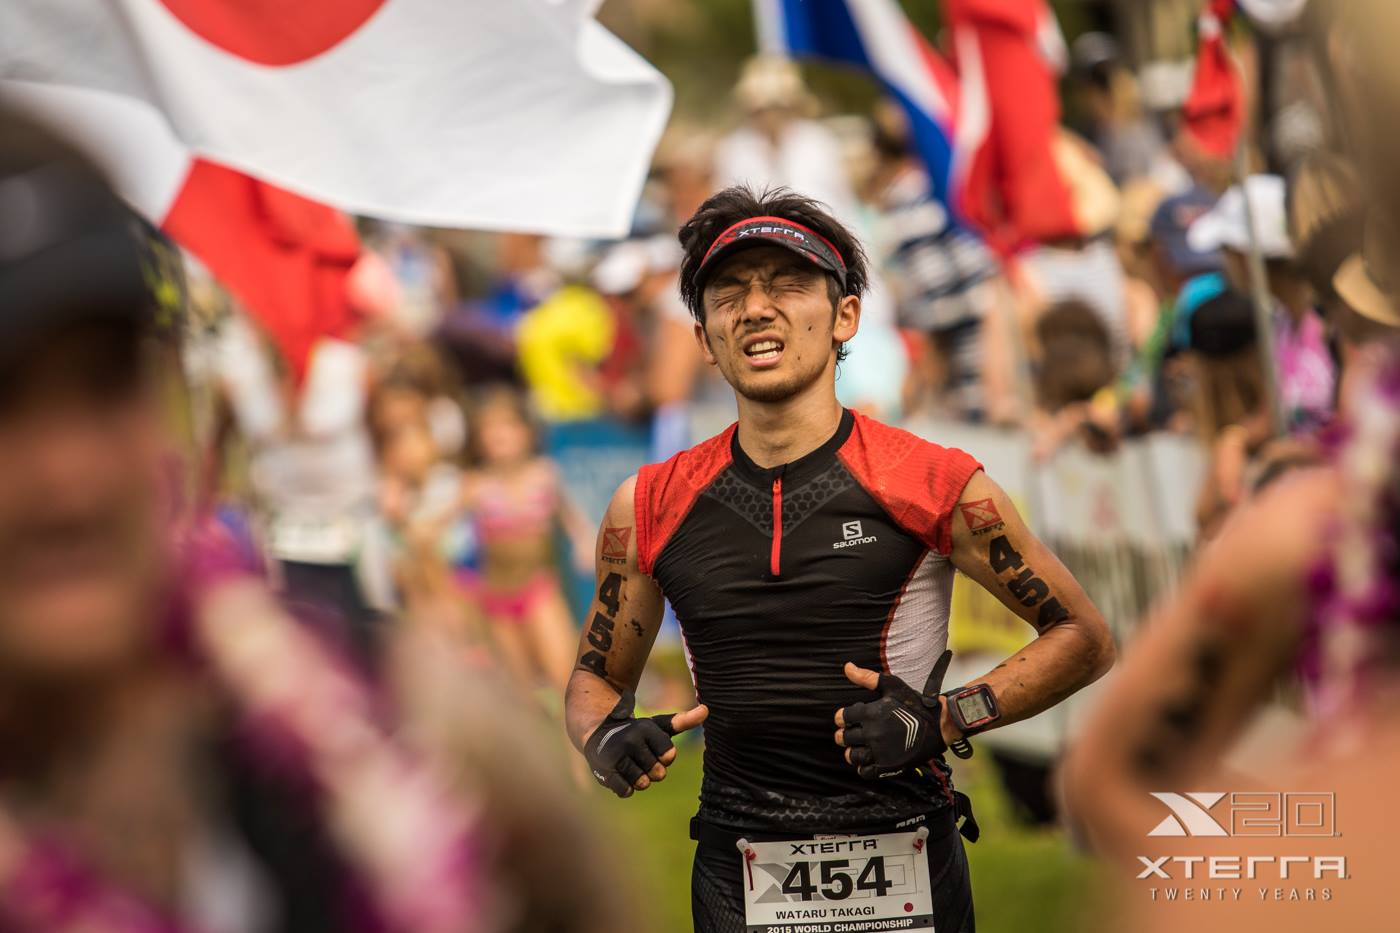 XTERRA_WORLD_CHAMPIONSHIP_2015_00084